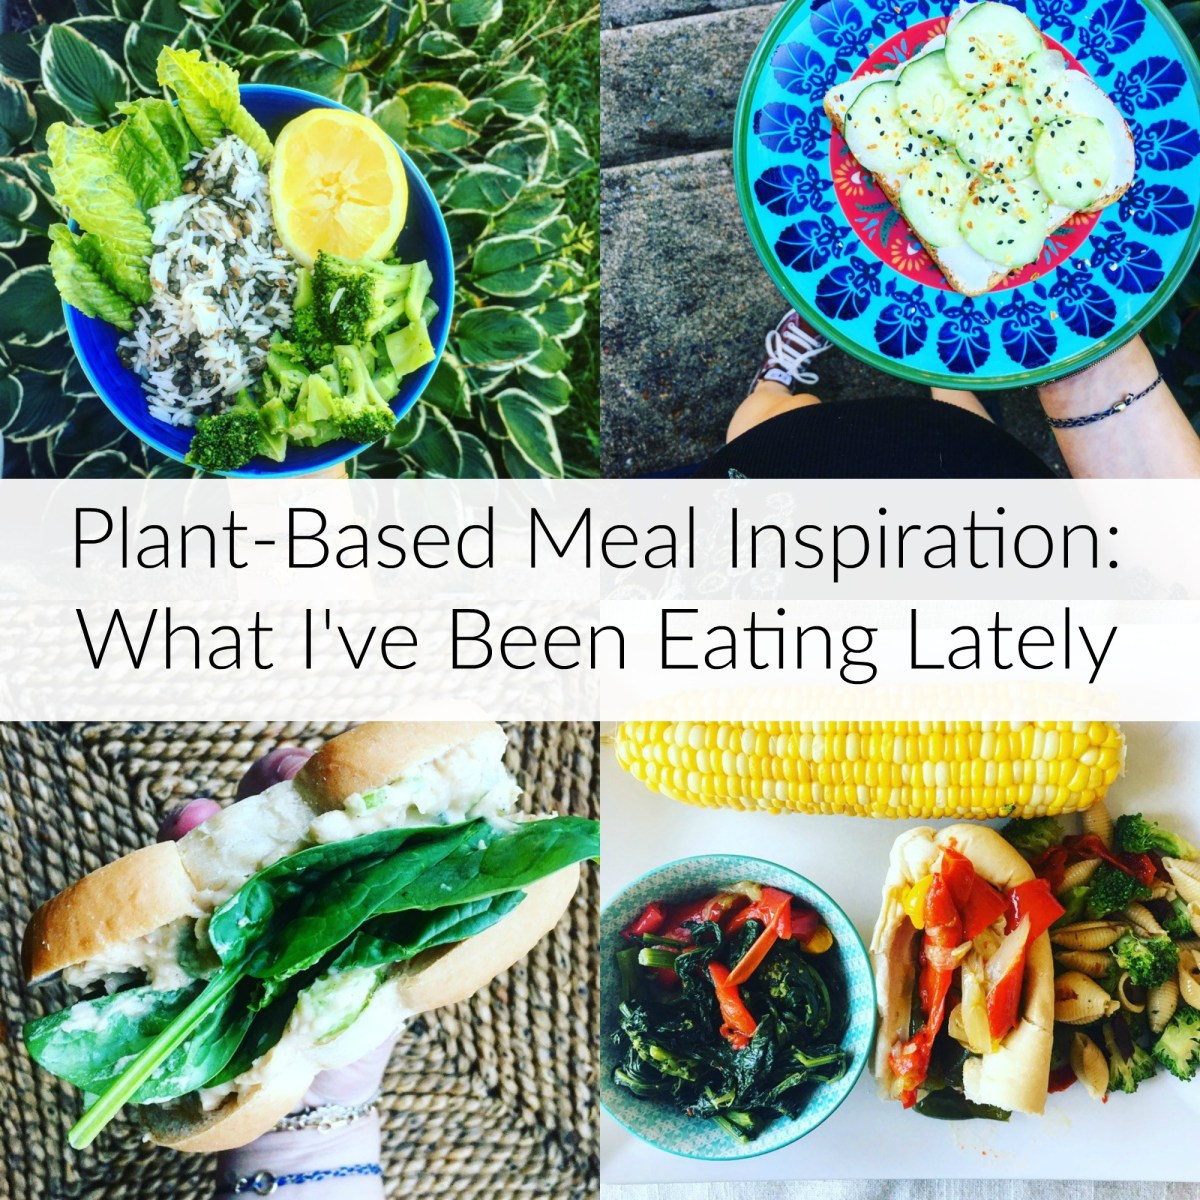 Plant-Based Life: What I've Been Eating Lately